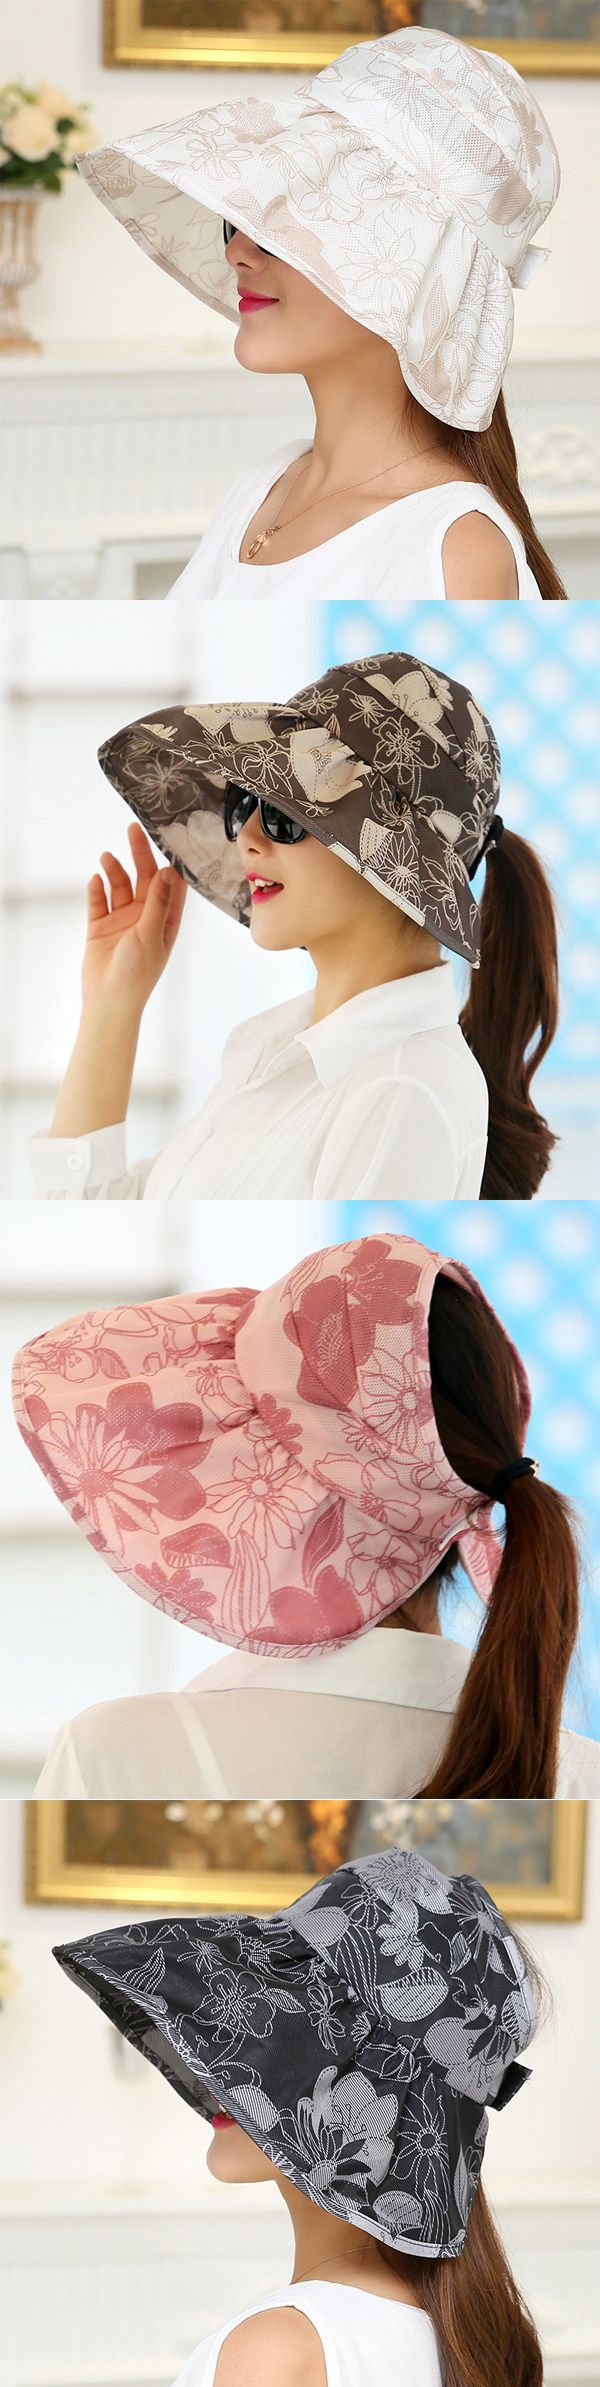 Women Vintage Foldable Outdoor Gardening Anti-UV Beach Sunscreen Sun Hat Flower Print Cap